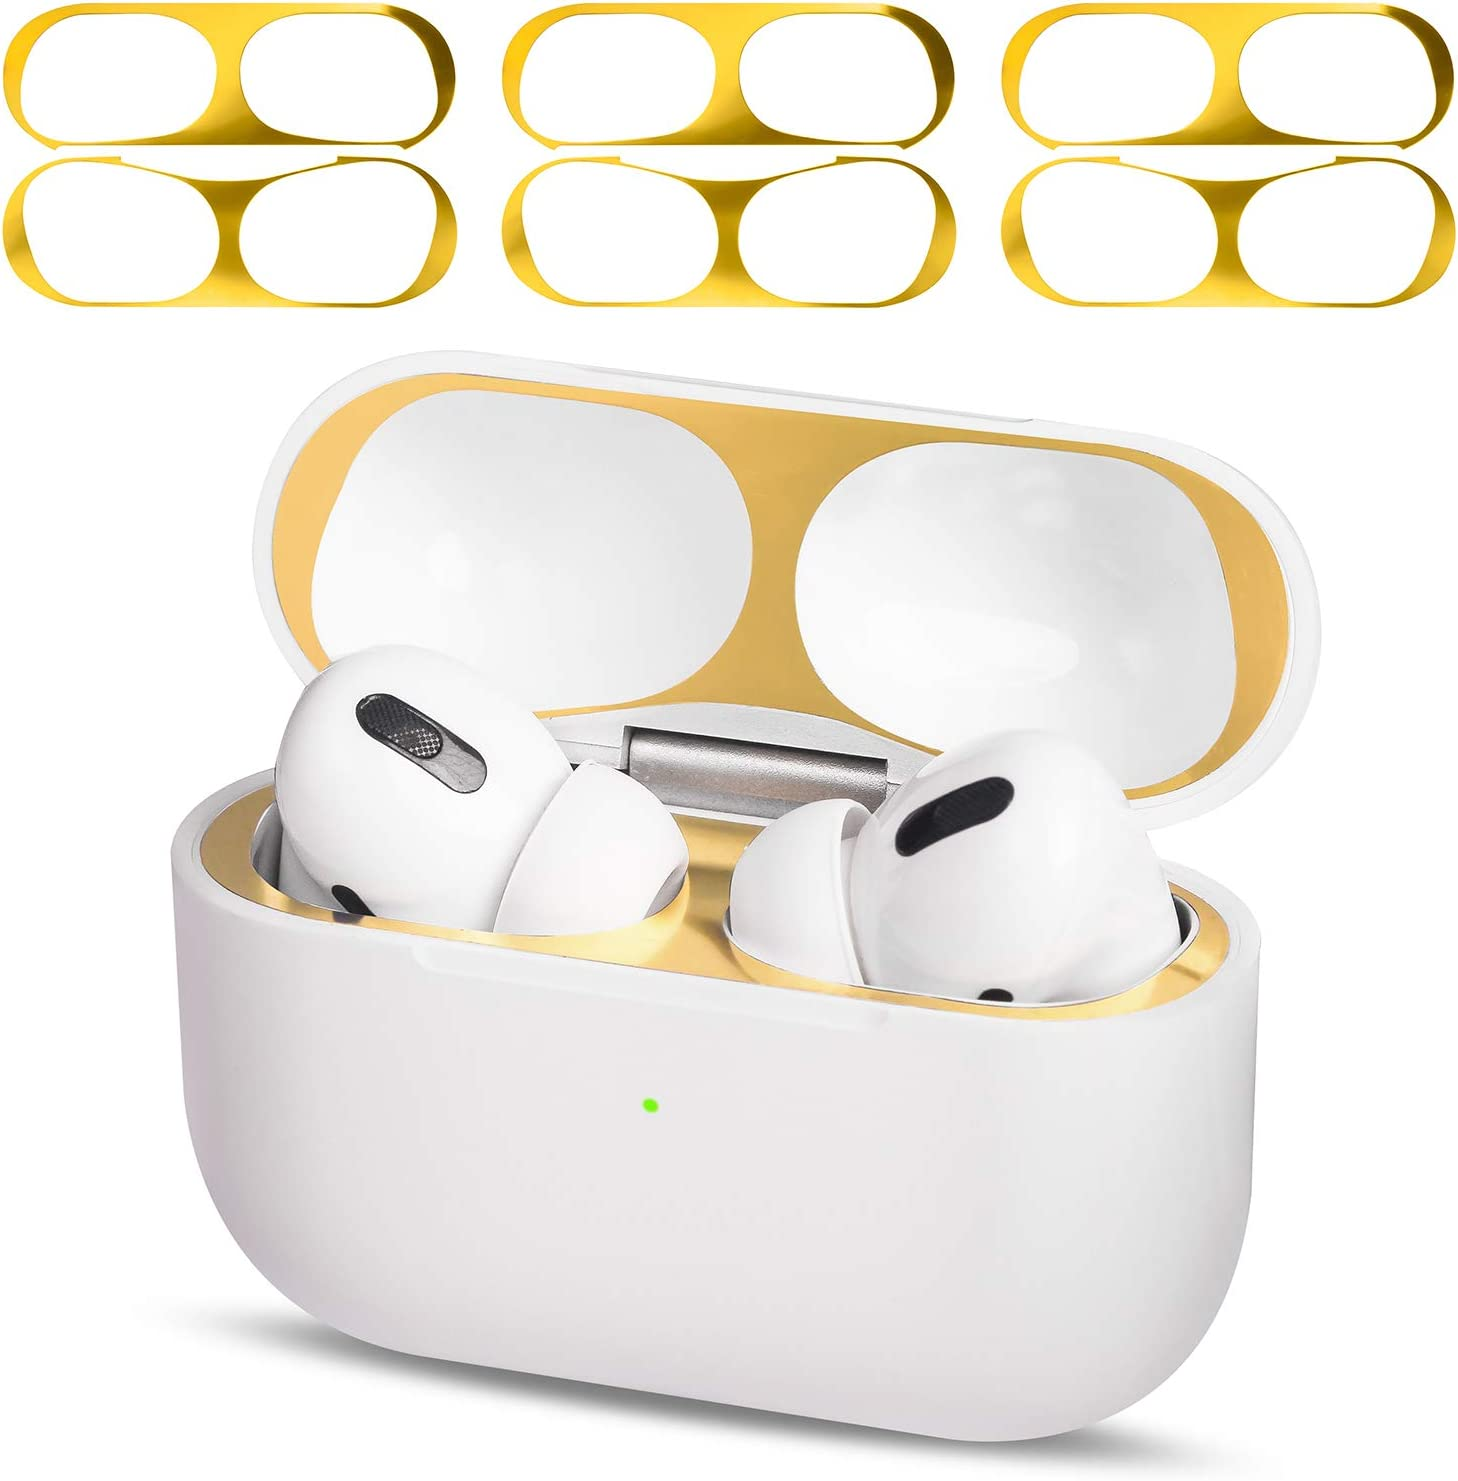 MioHHR AirPods Pro Dust Guard Clear, Metal Dust Cover for Apple Airpod Pro Protector Sticker, Airpods 3 Dust Proof Film Accessories for Wireless Charging Case,Ultra Slim Luxurious Looking -Gold